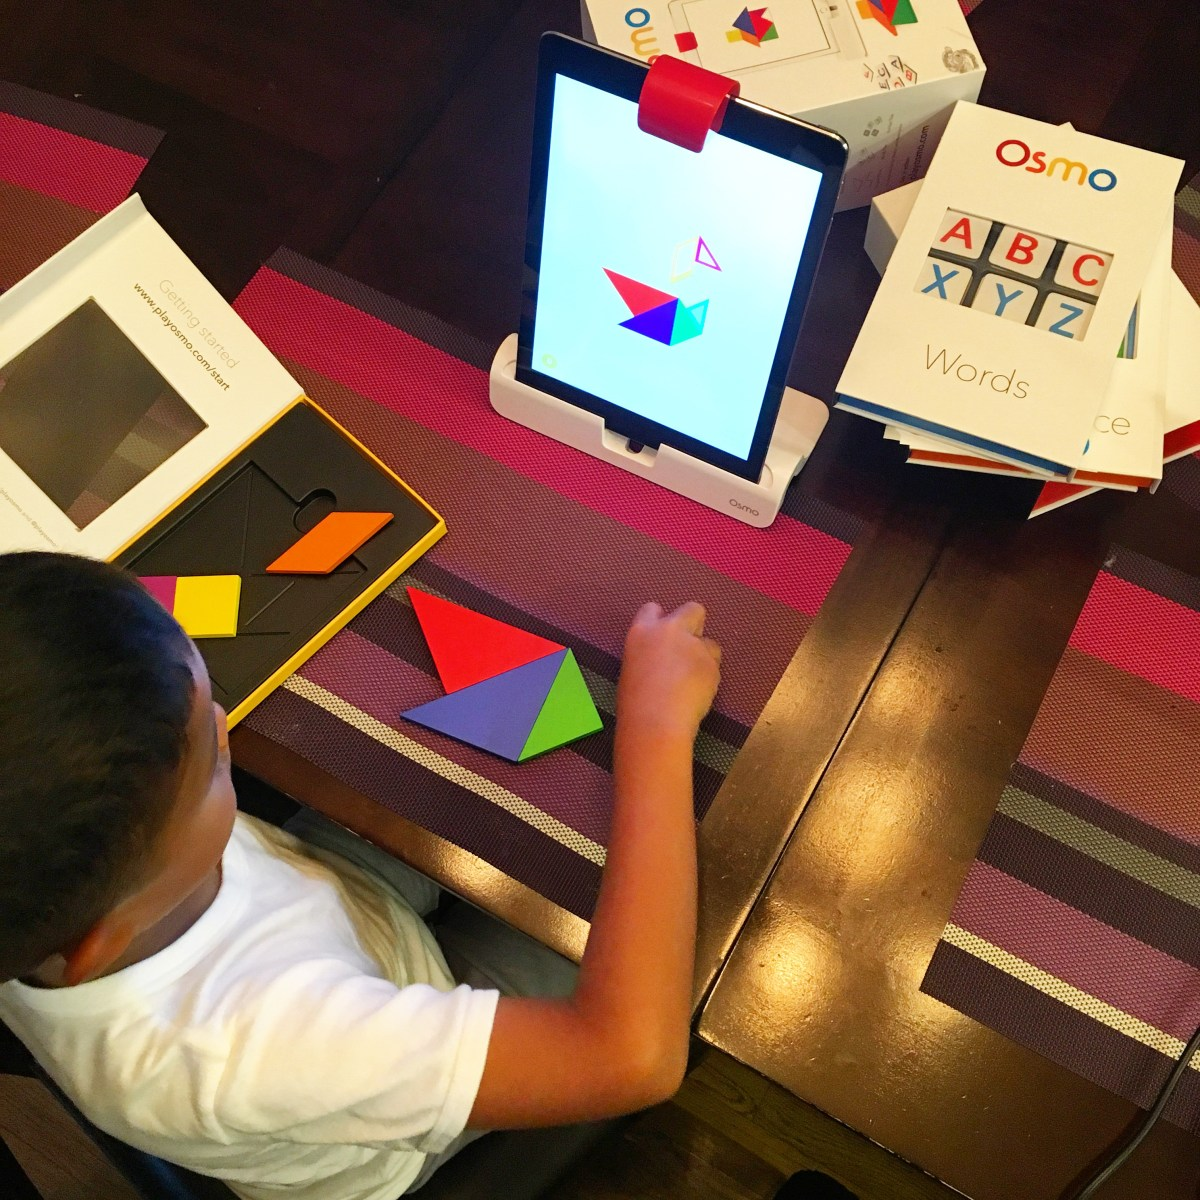 Get Hands On with your iPad and the OSMO Genius Kit